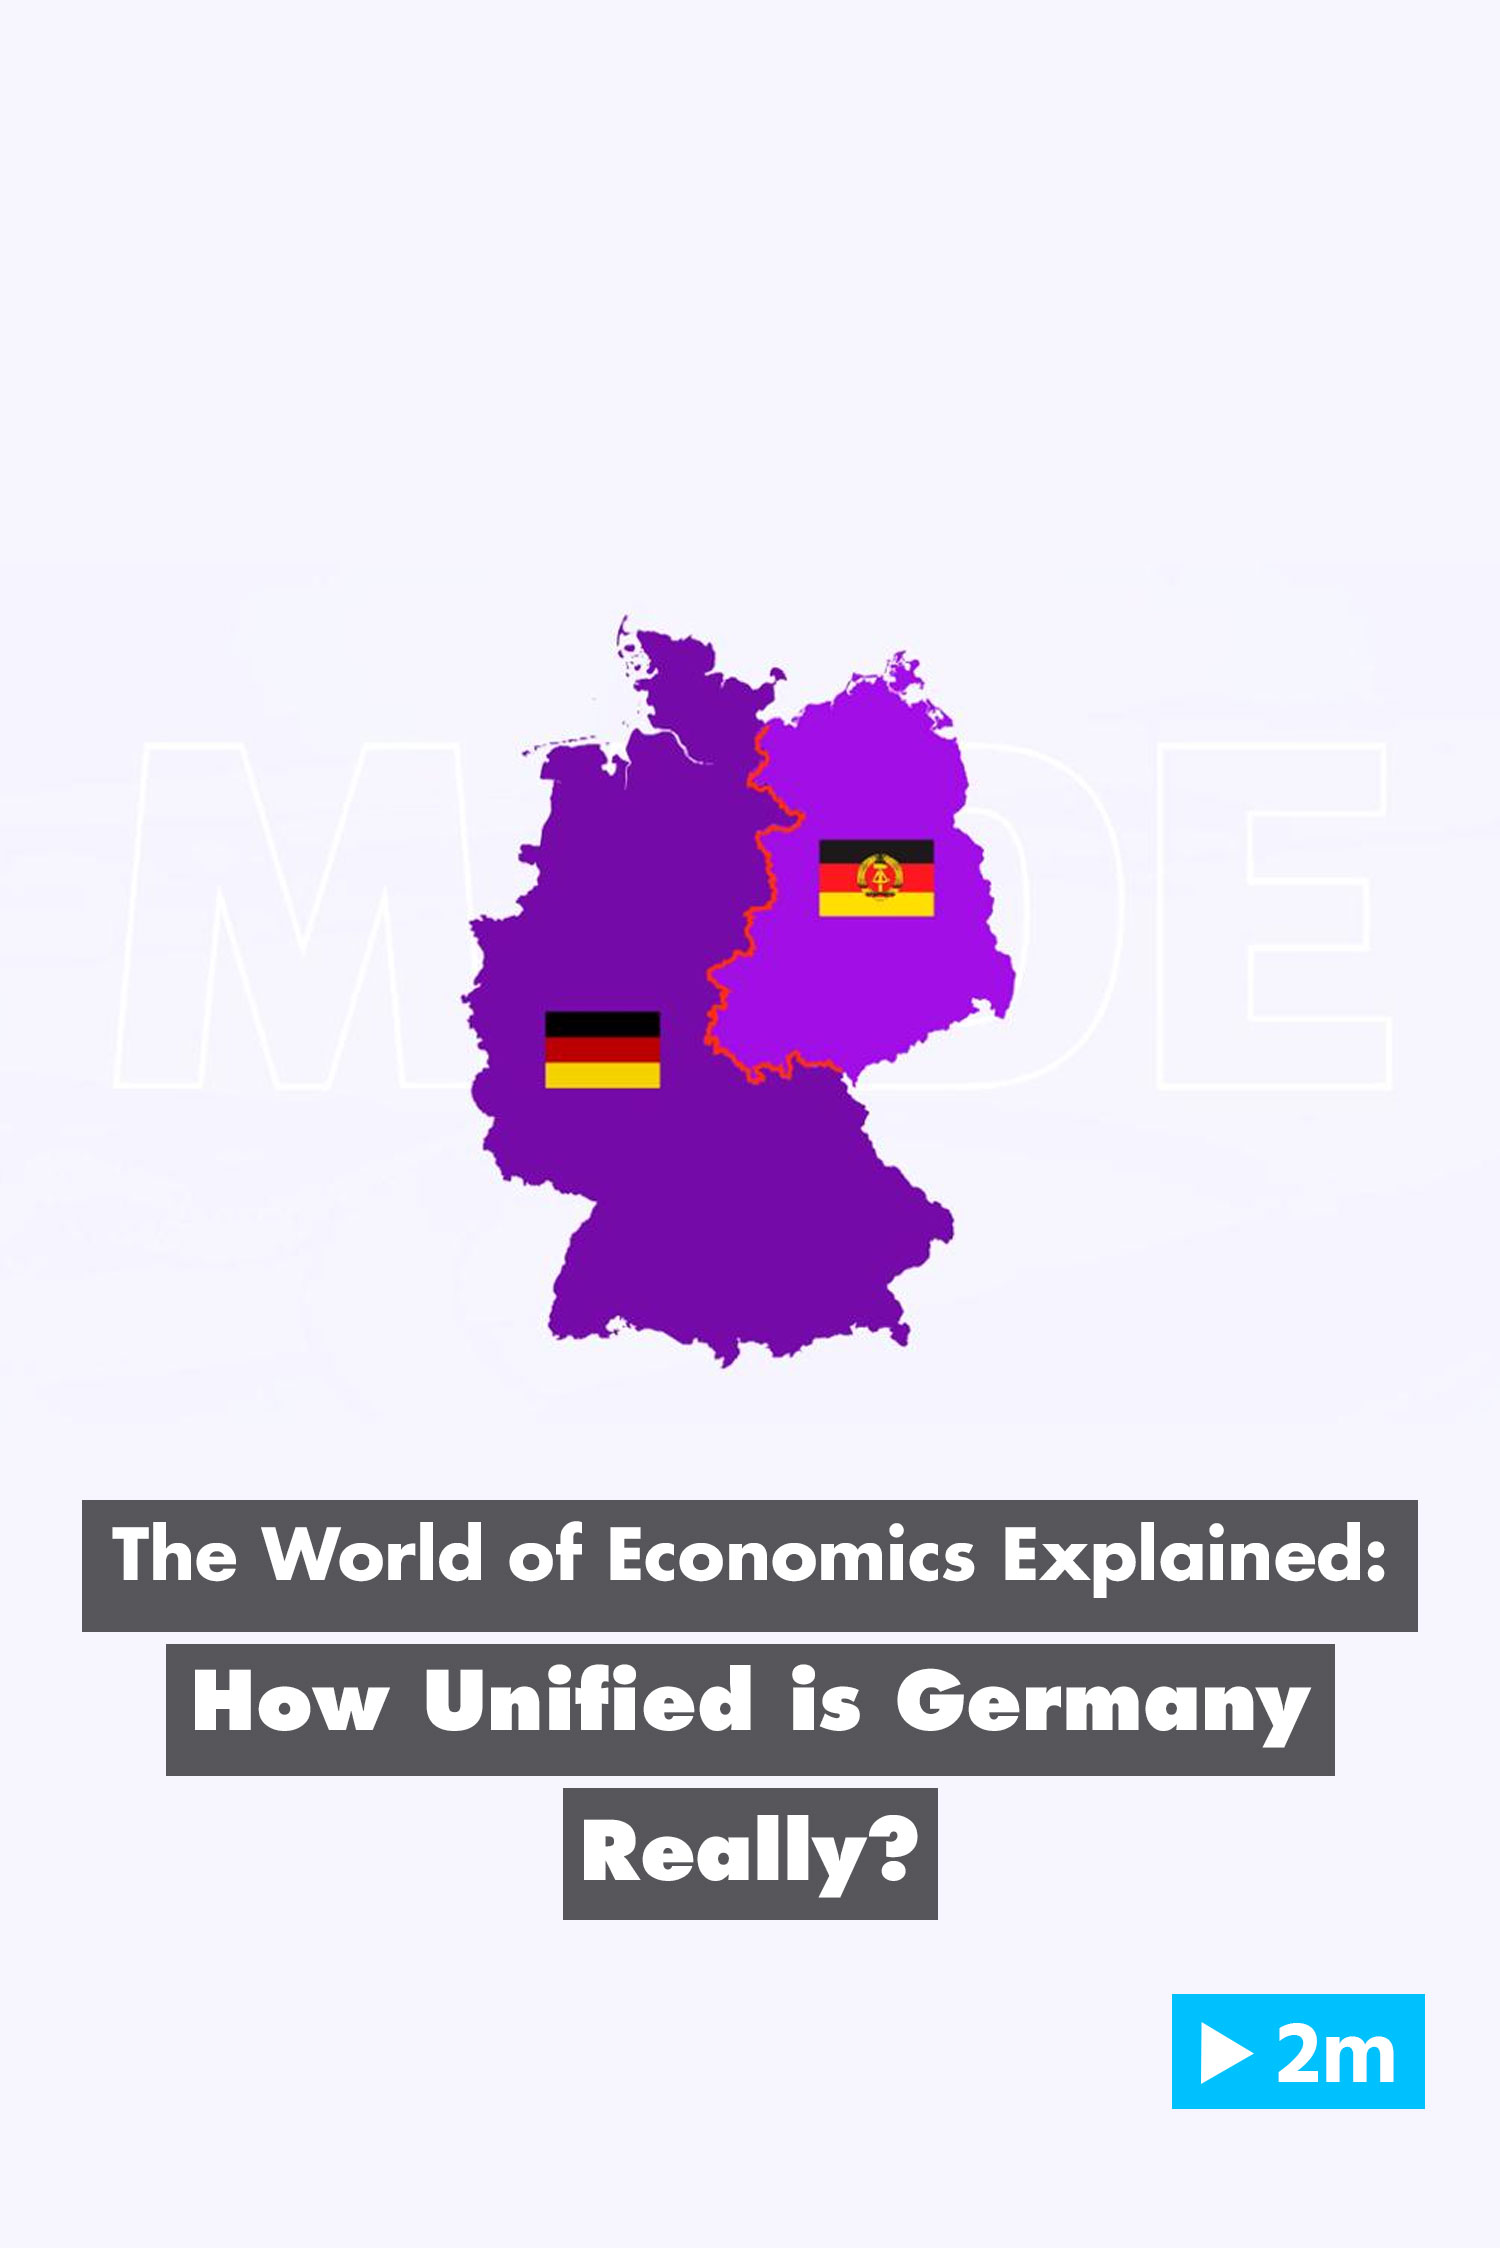 The World of Economics Explained: How unified is Germany really?